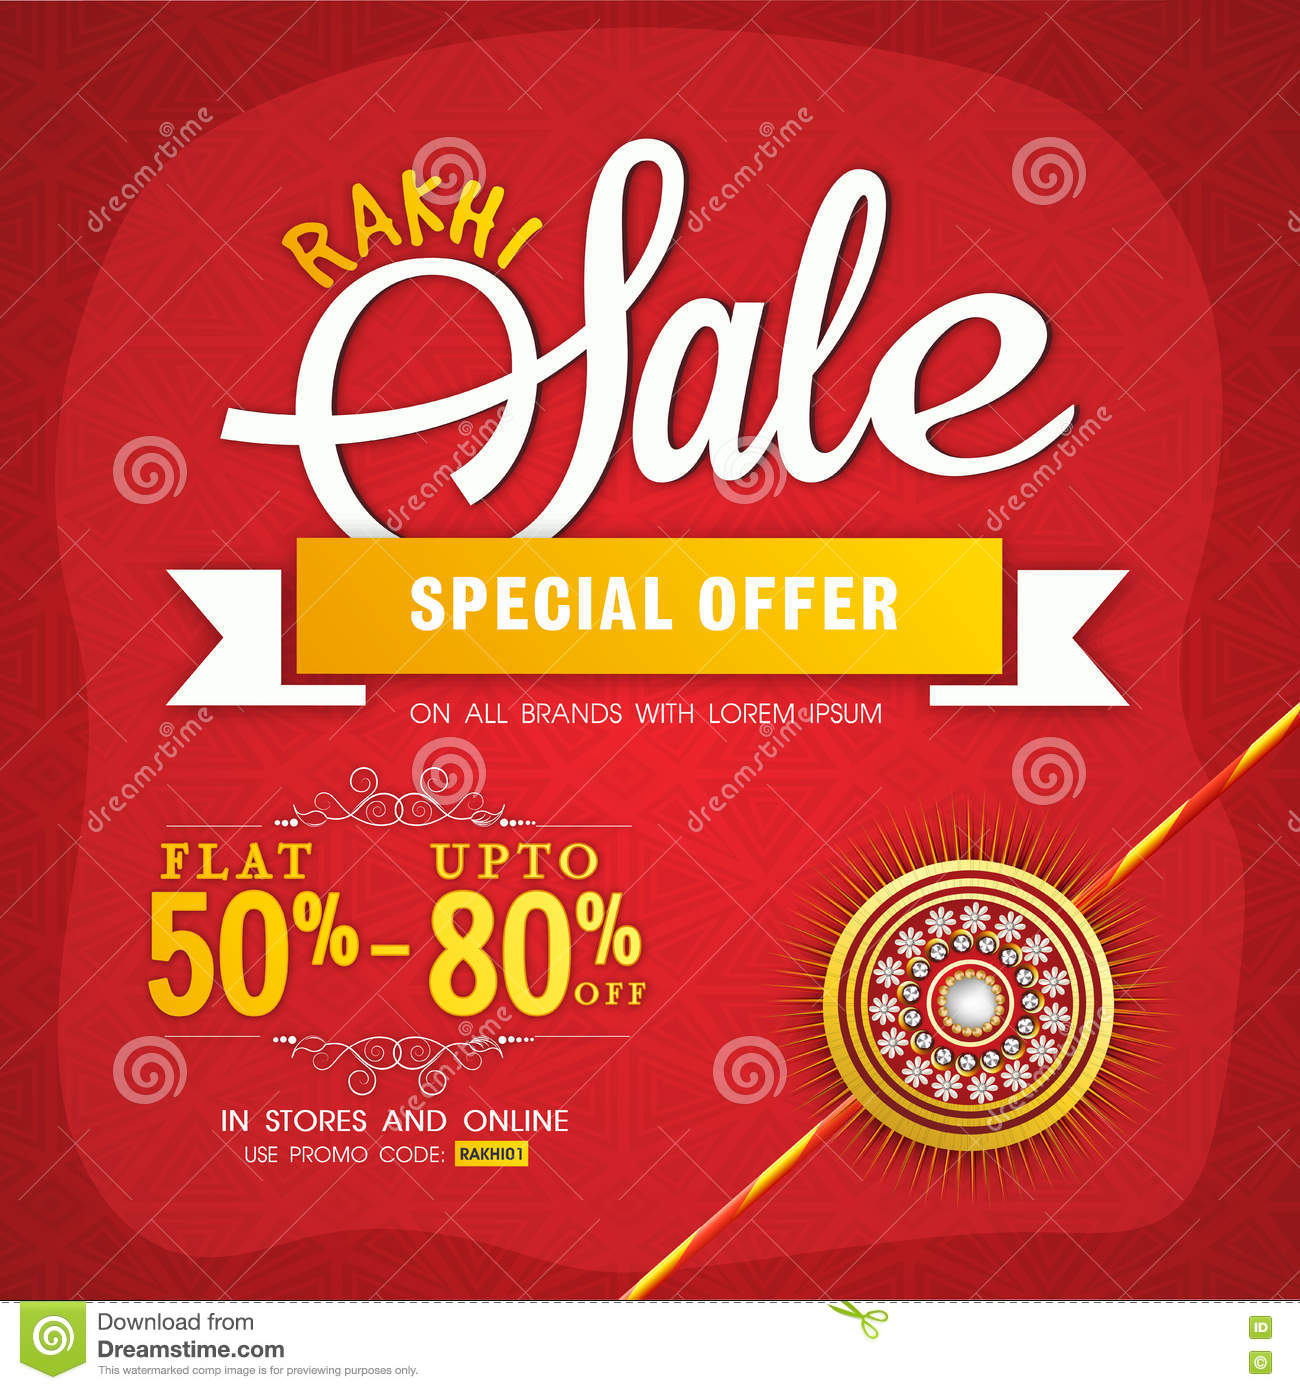 rakhi poster banner or flyer design stock illustration rakhi poster banner or flyer design